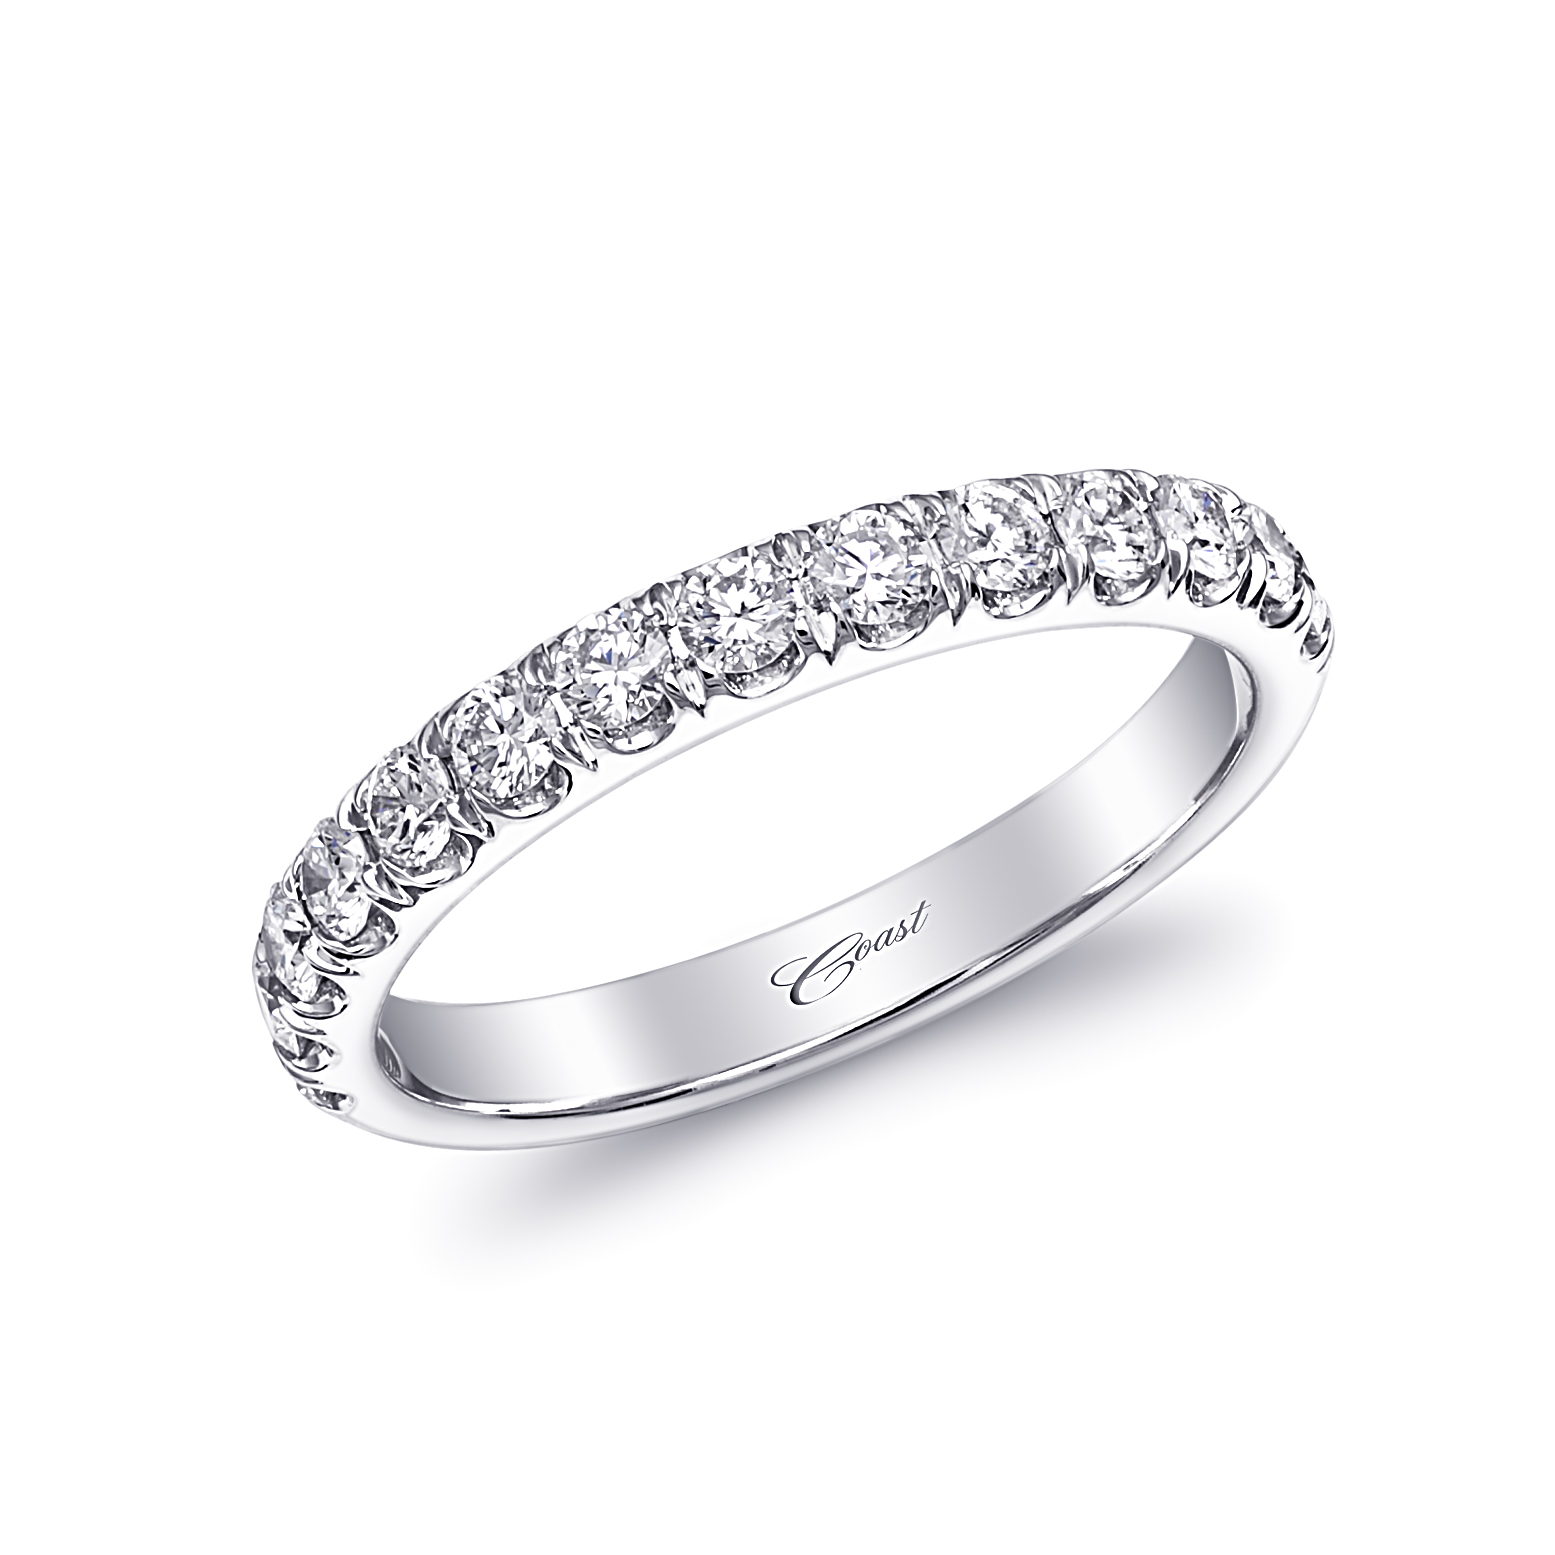 ring wedding palladium bands fields canadian platinum stellar set diamond band jewellery gold modern minimal bezel stones eternity products